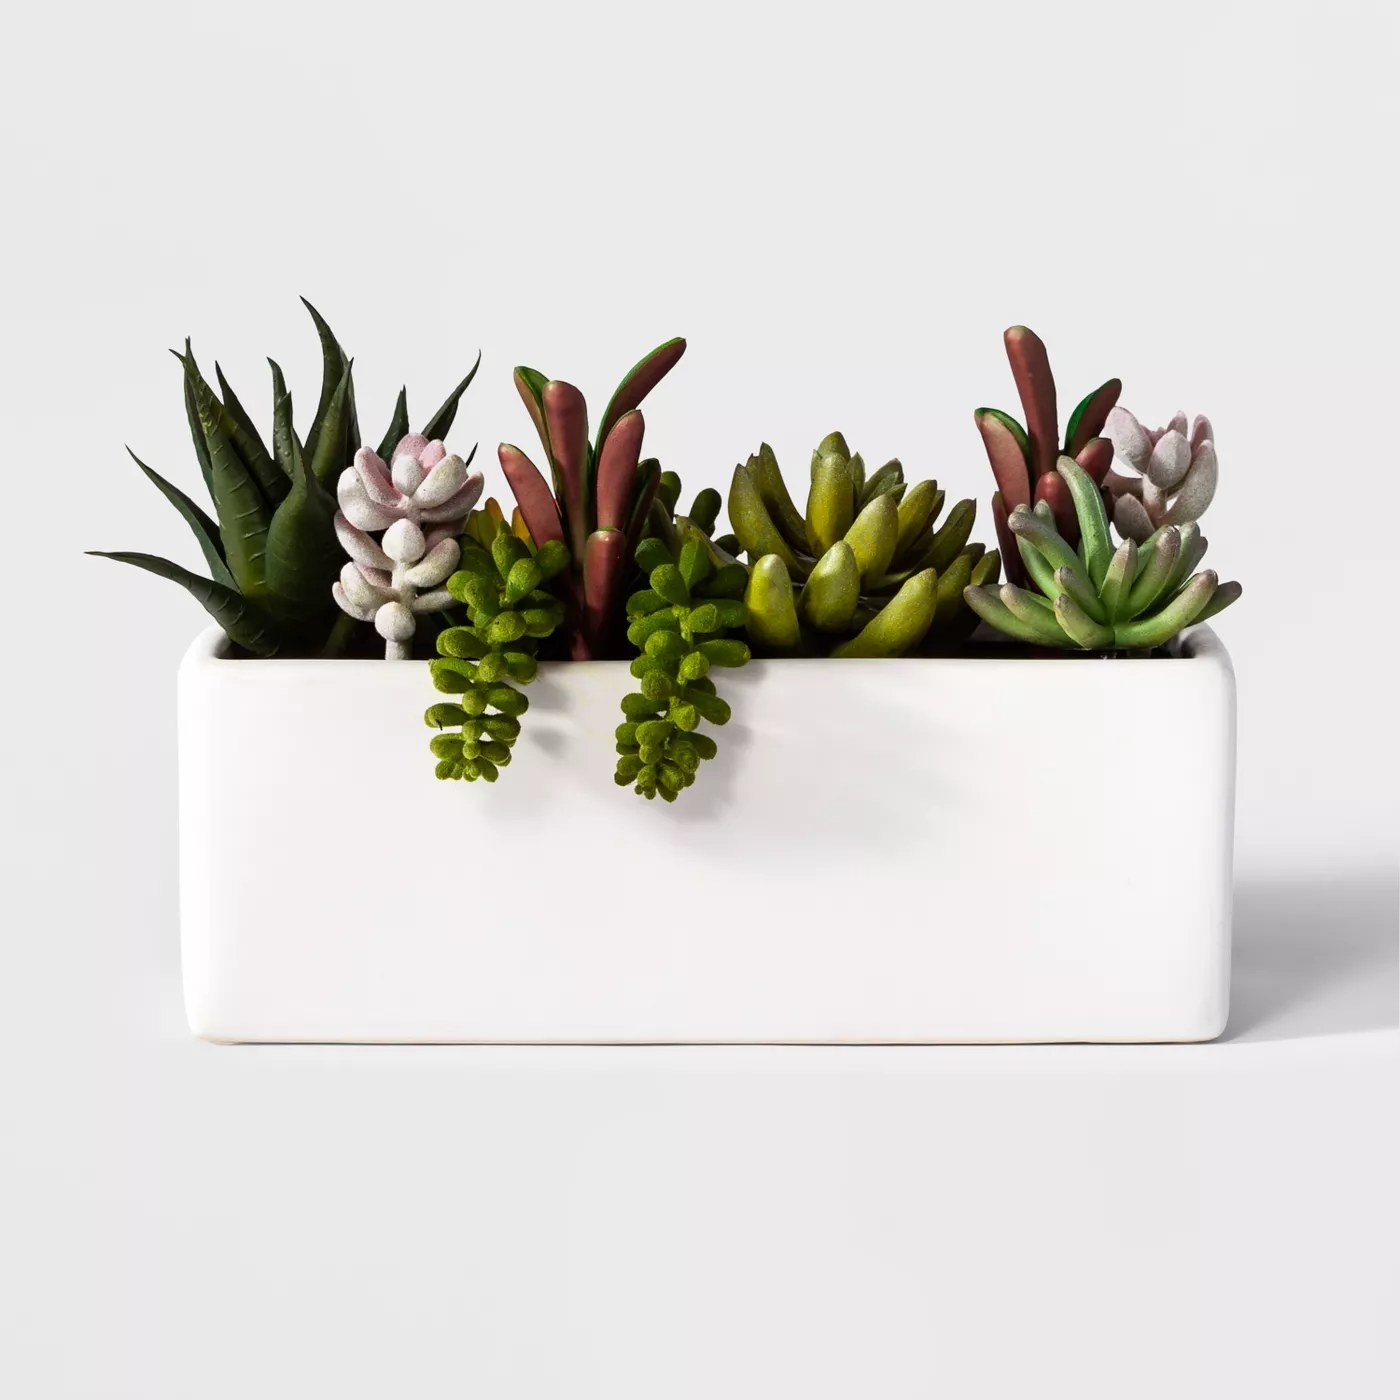 The rectangular white planter filled with small faux succulents